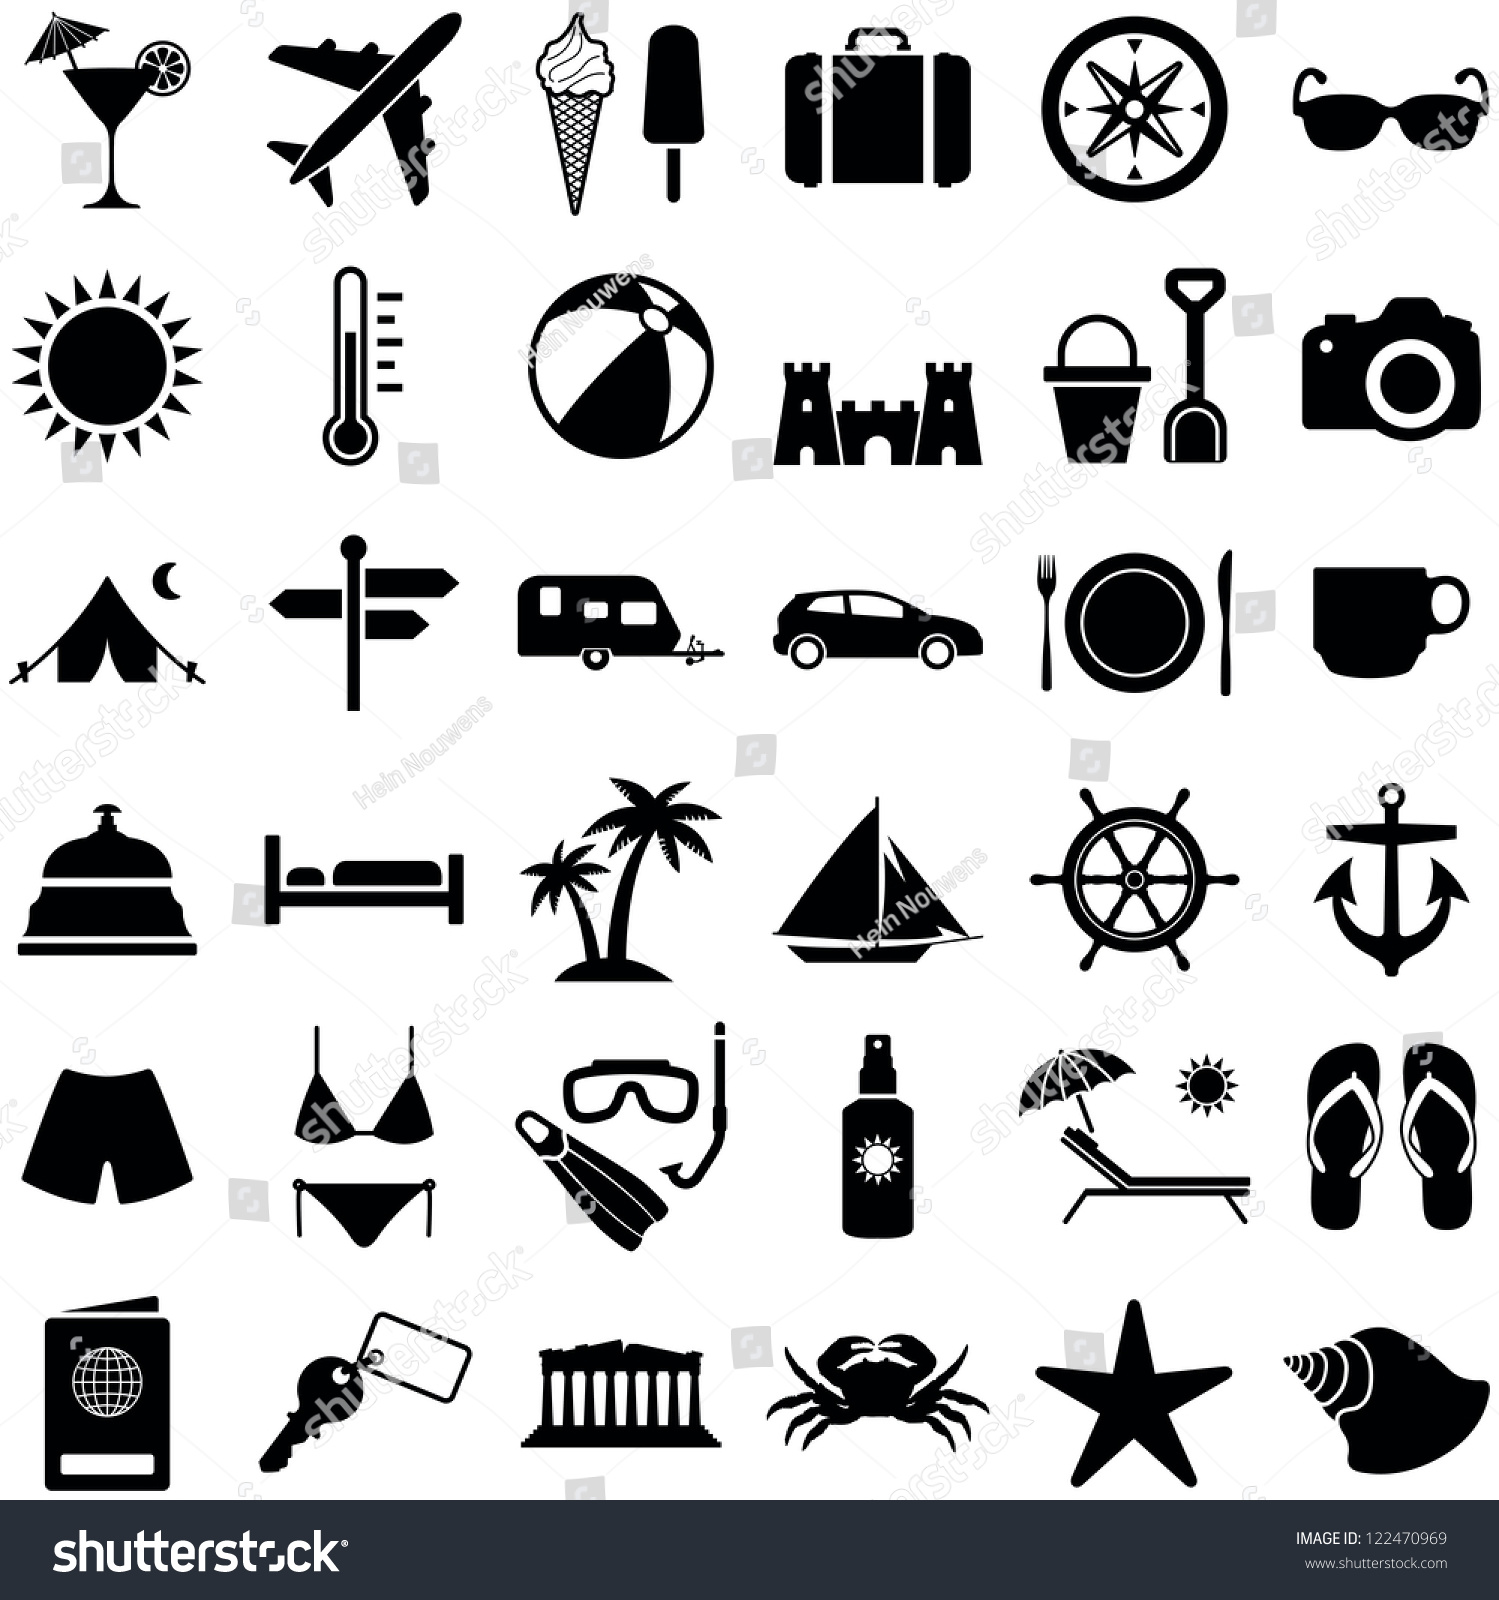 travel vacation icon collection vector silhouette stock Sand Clip Art Sand Clip Art